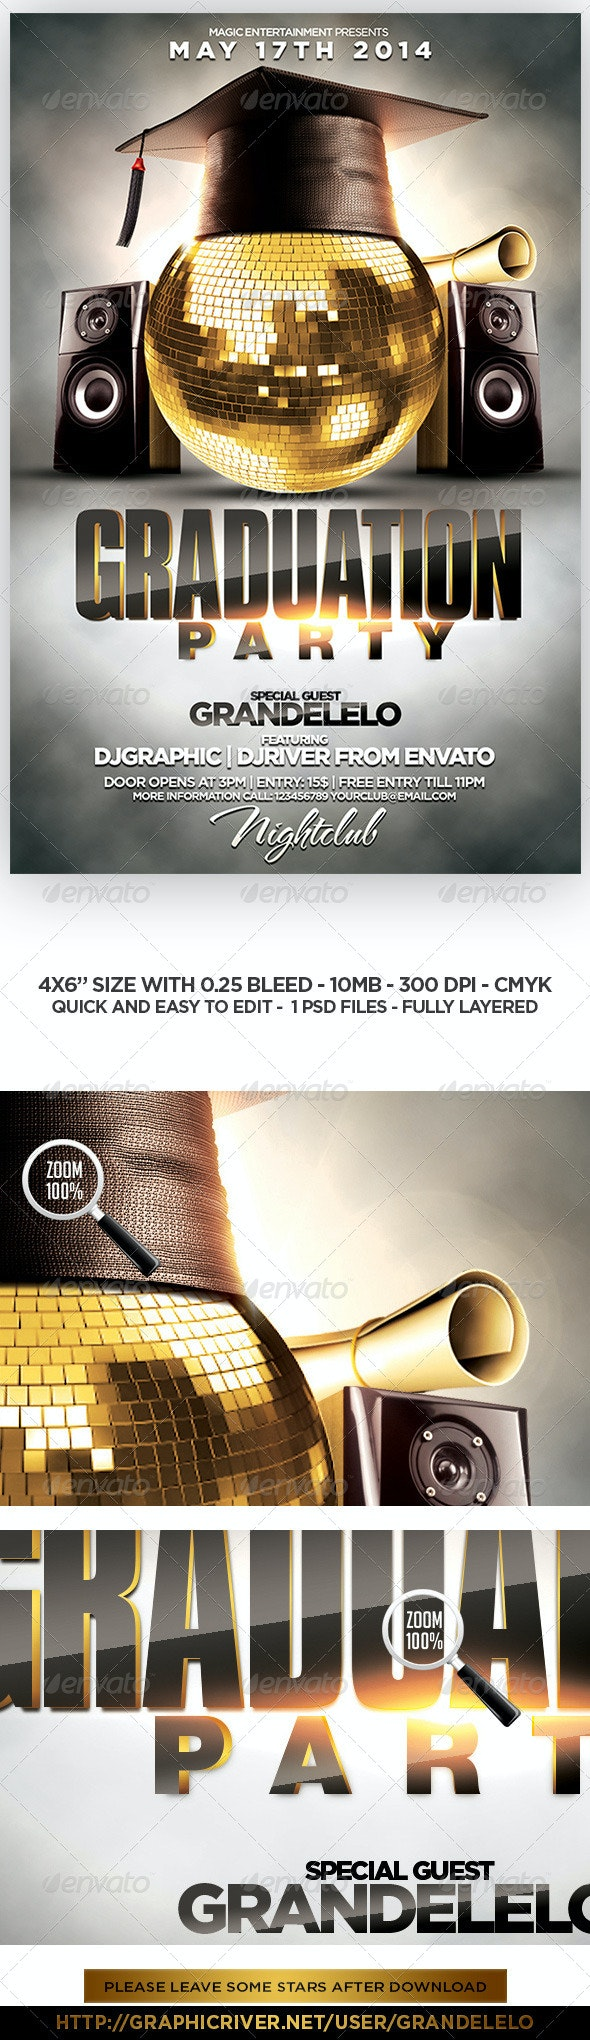 Graduation Party Flyer Template by grandelelo | GraphicRiver